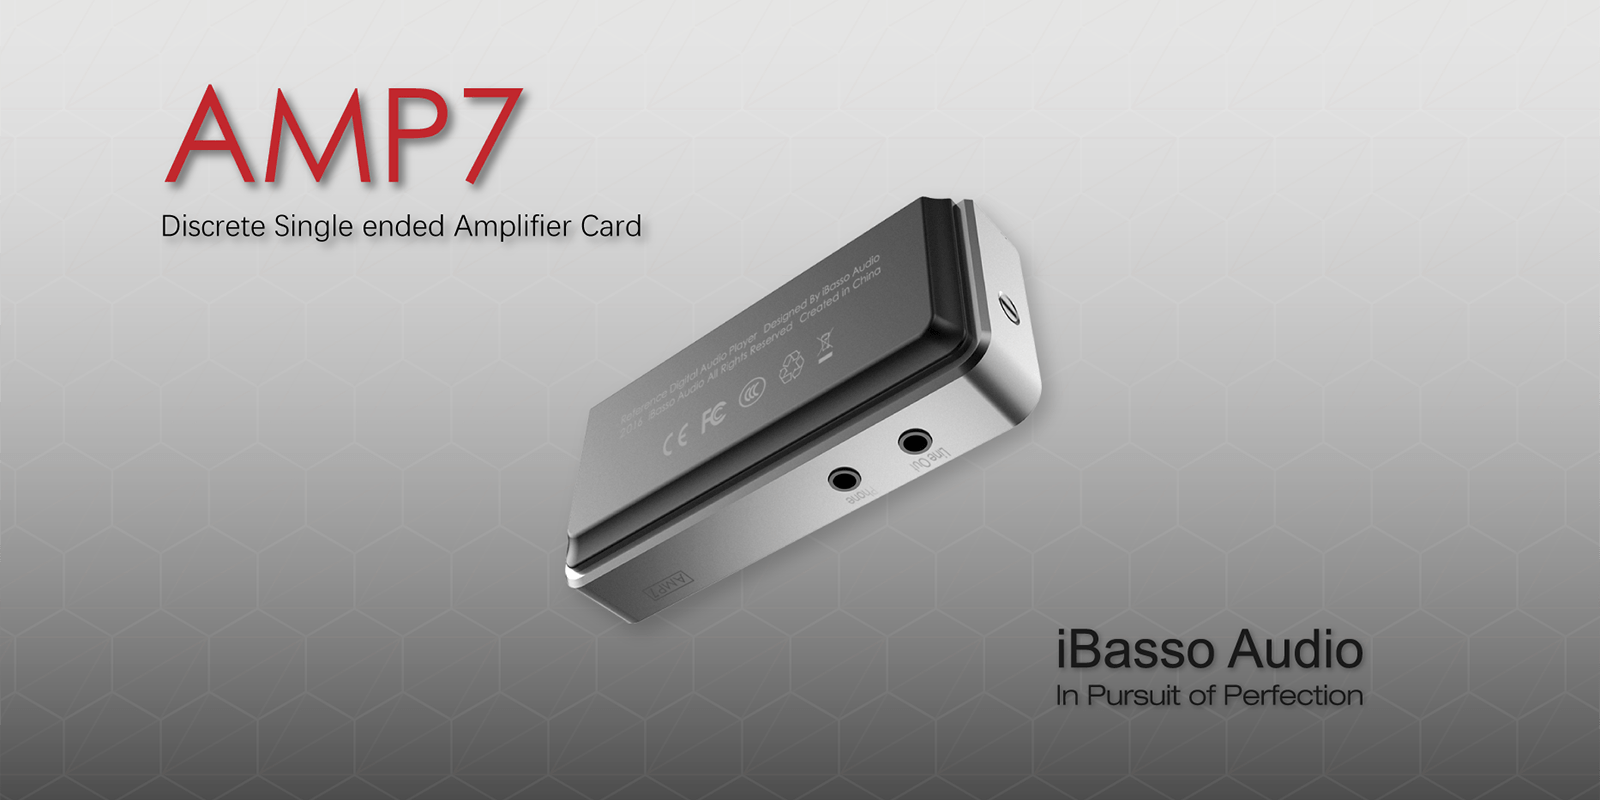 iBasso AMP7 discrete single ended amplifier card